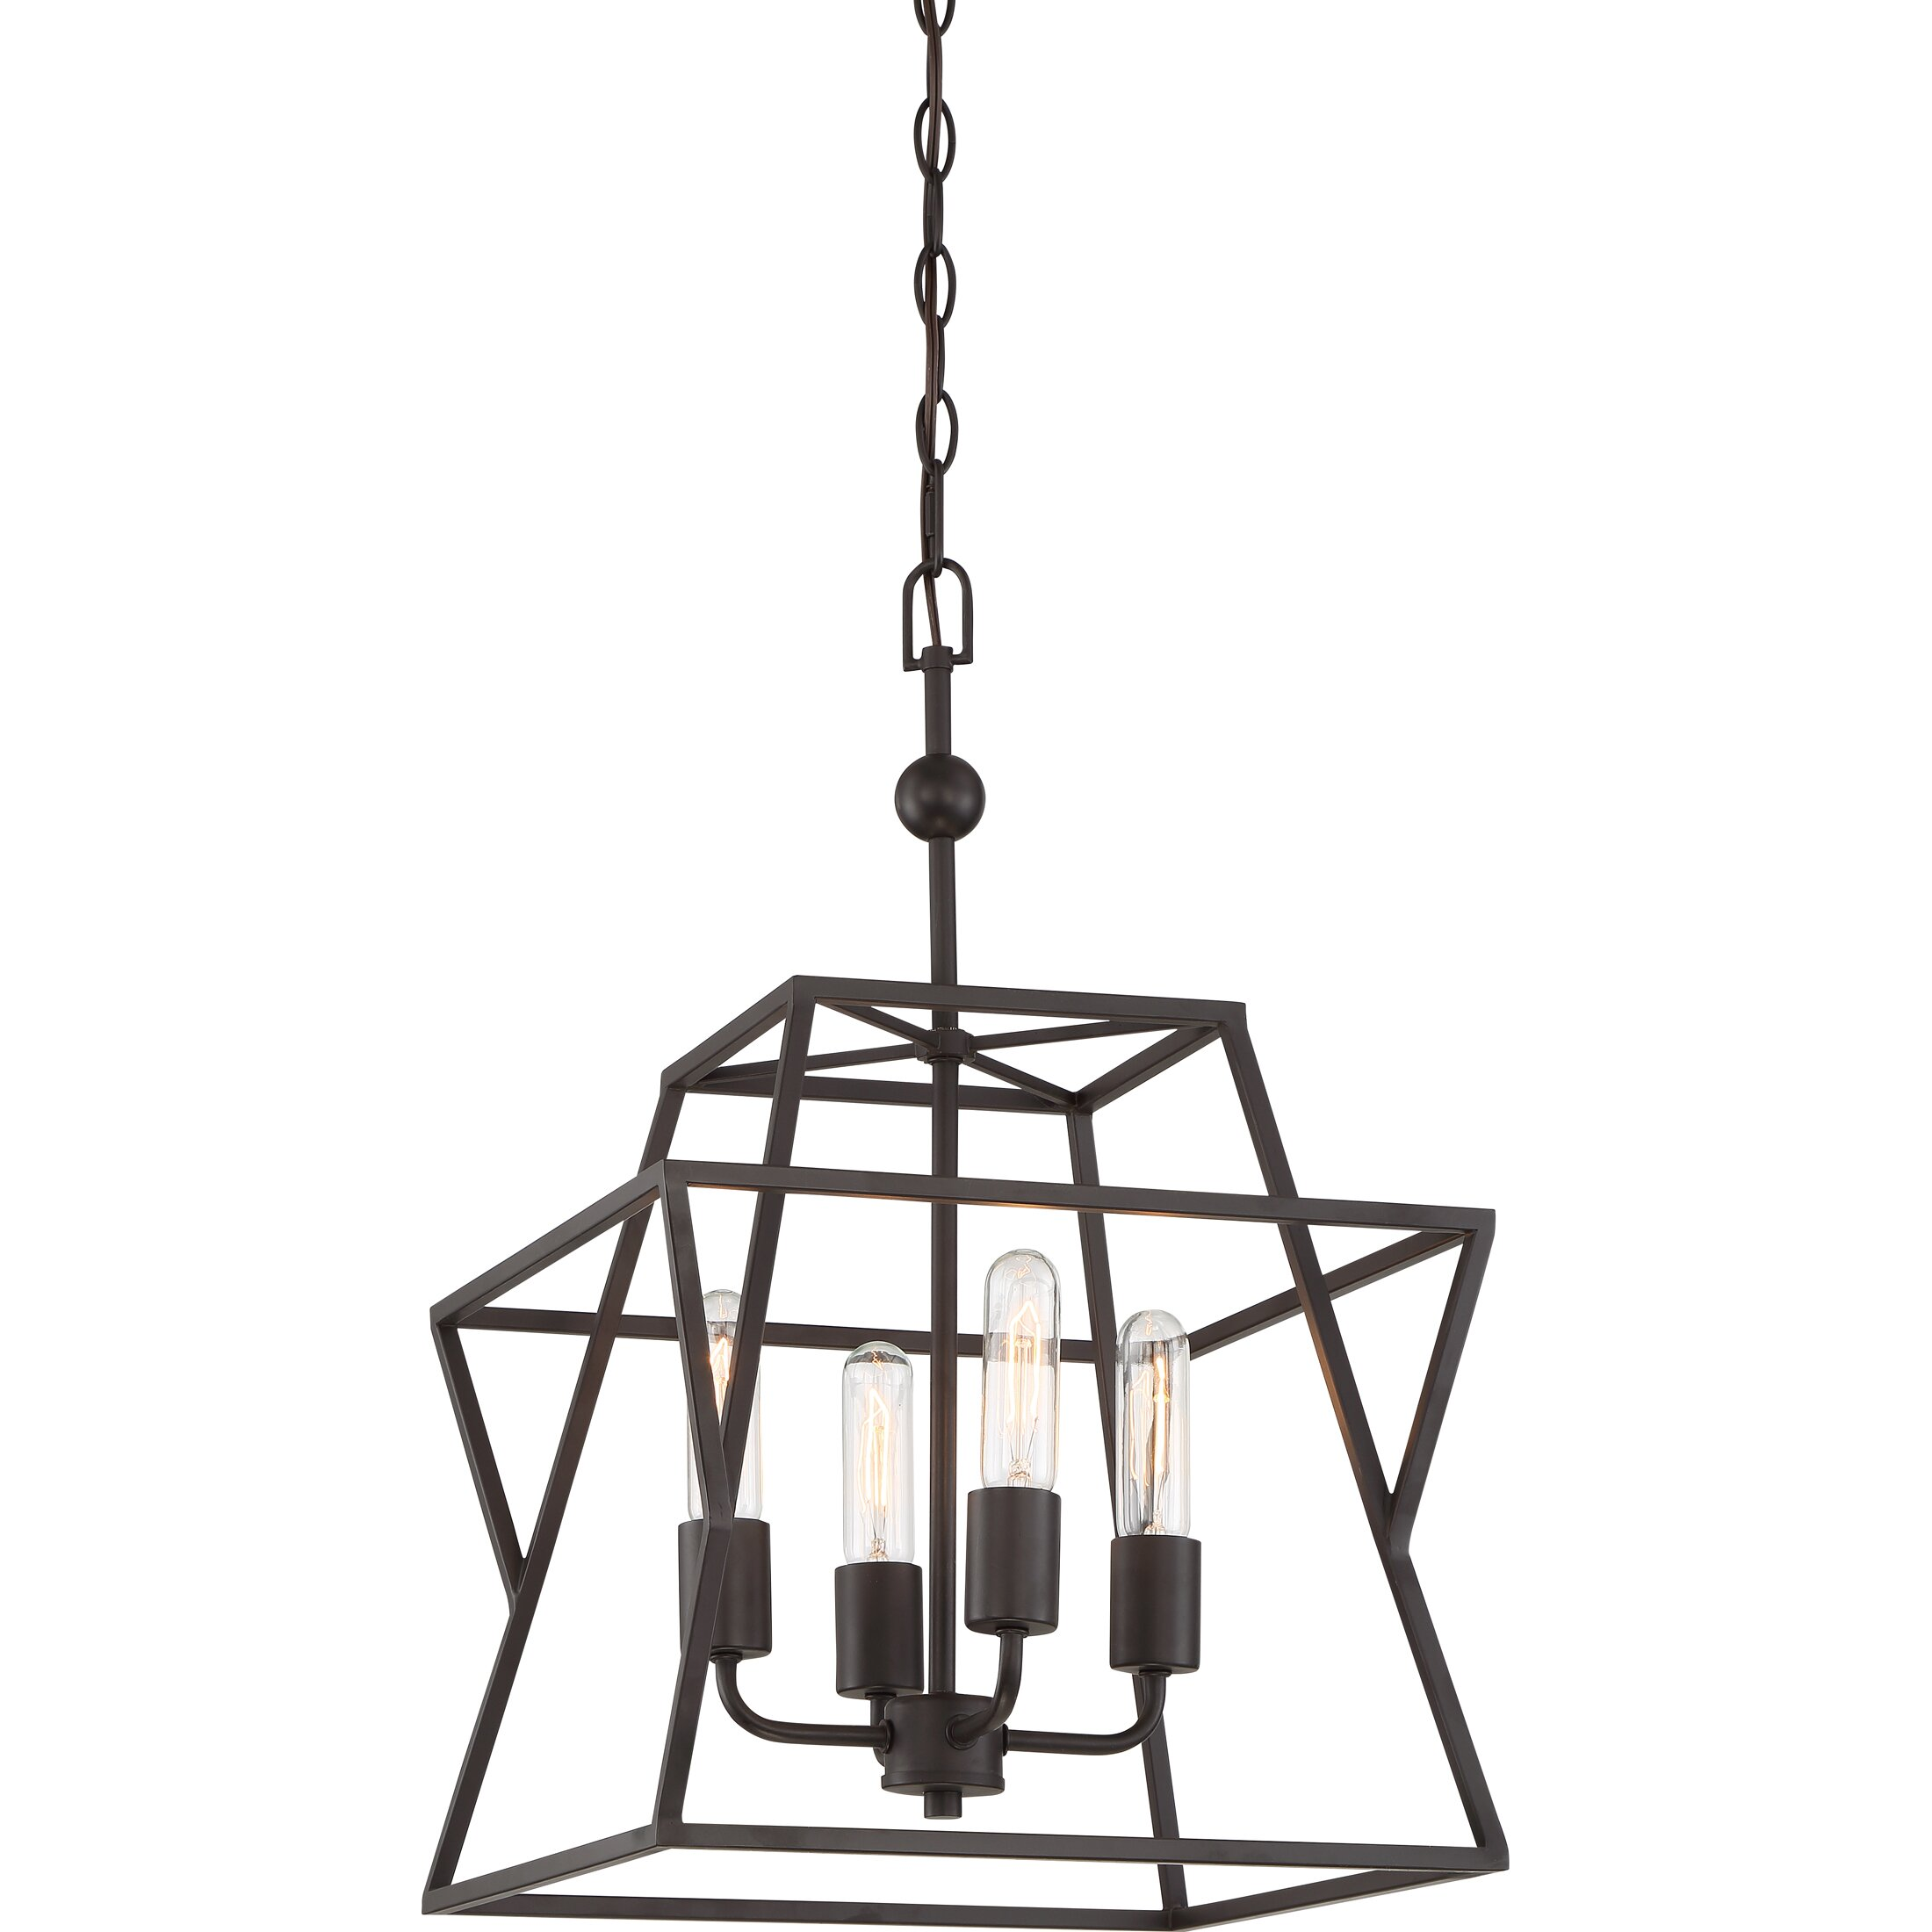 Osburn 4 Light Candle Style Chandelier LRFY3356 on heaters for living room